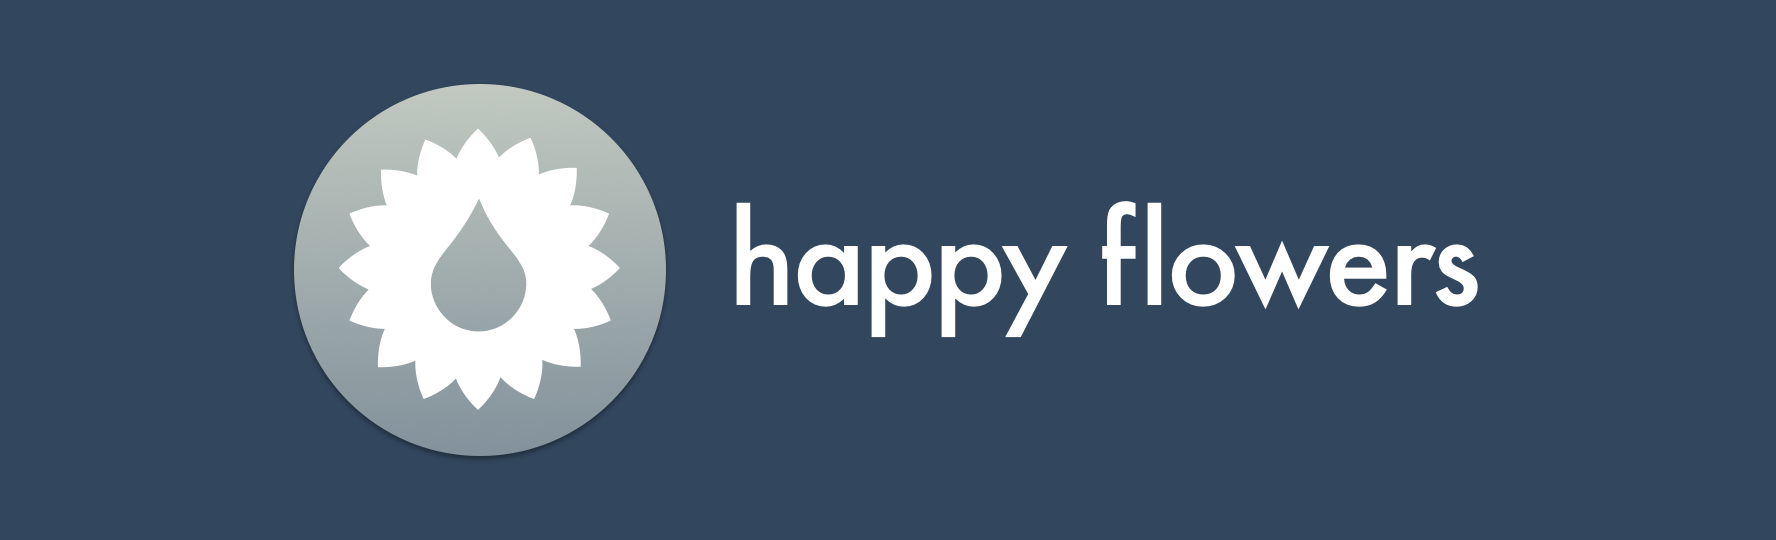 happy flowers logo